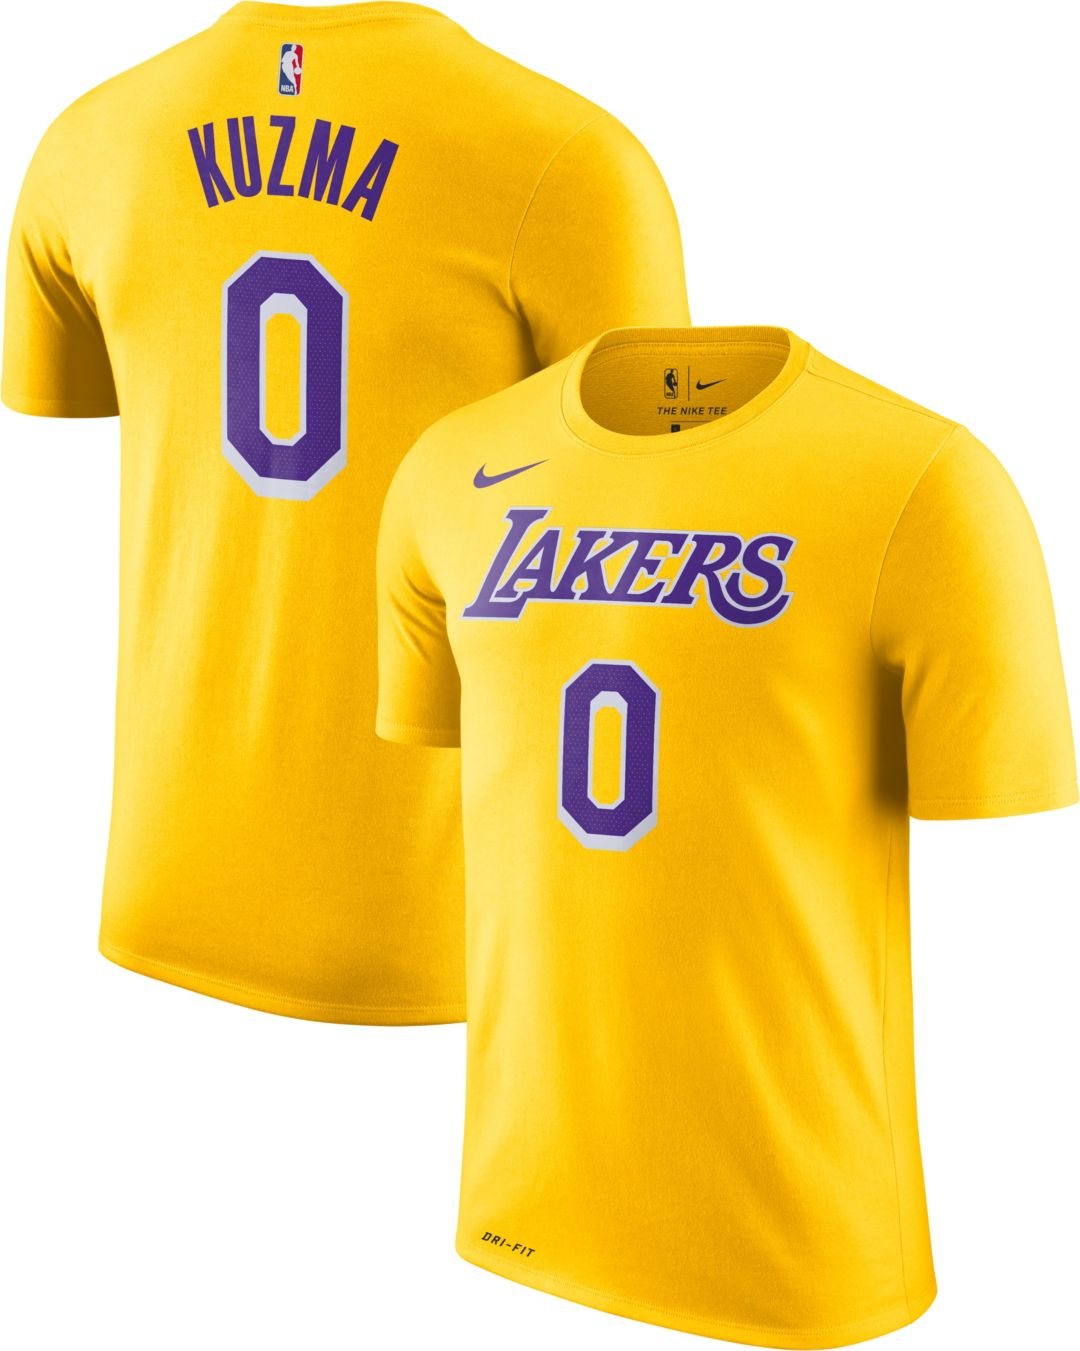 best website 91ae5 6f281 Nike Youth Los Angeles Lakers Kyle Kuzma #0 Dri-FIT Gold T-Shirt